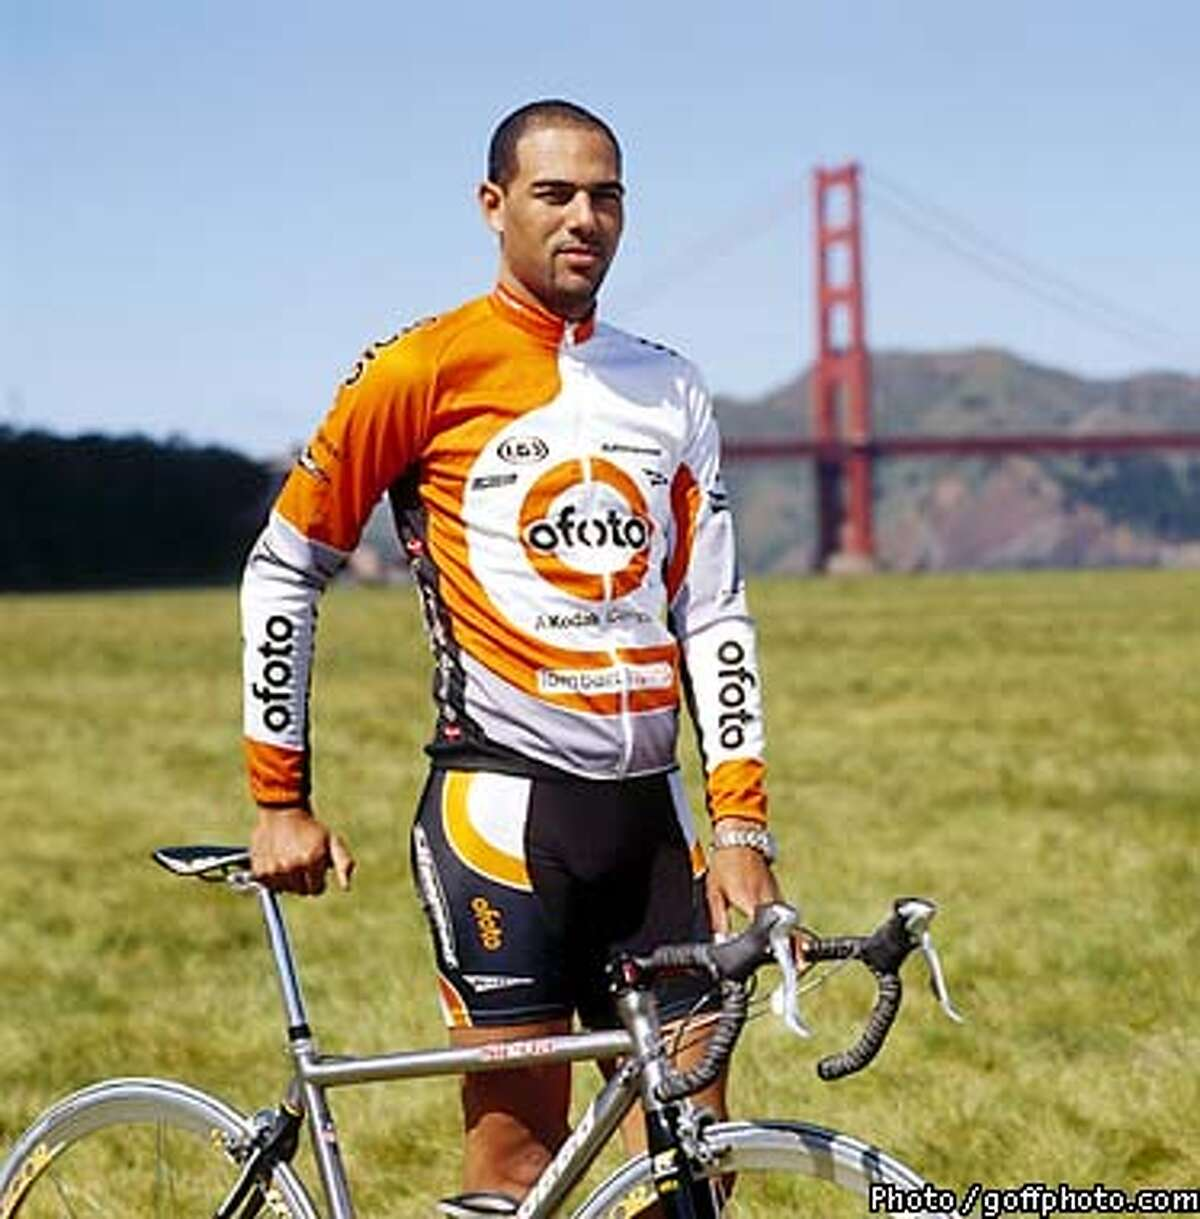 Devon Hoff- , Oakland resident who cycles for the OFOTO LOMBARDI professional team. Photo / goffphoto.com